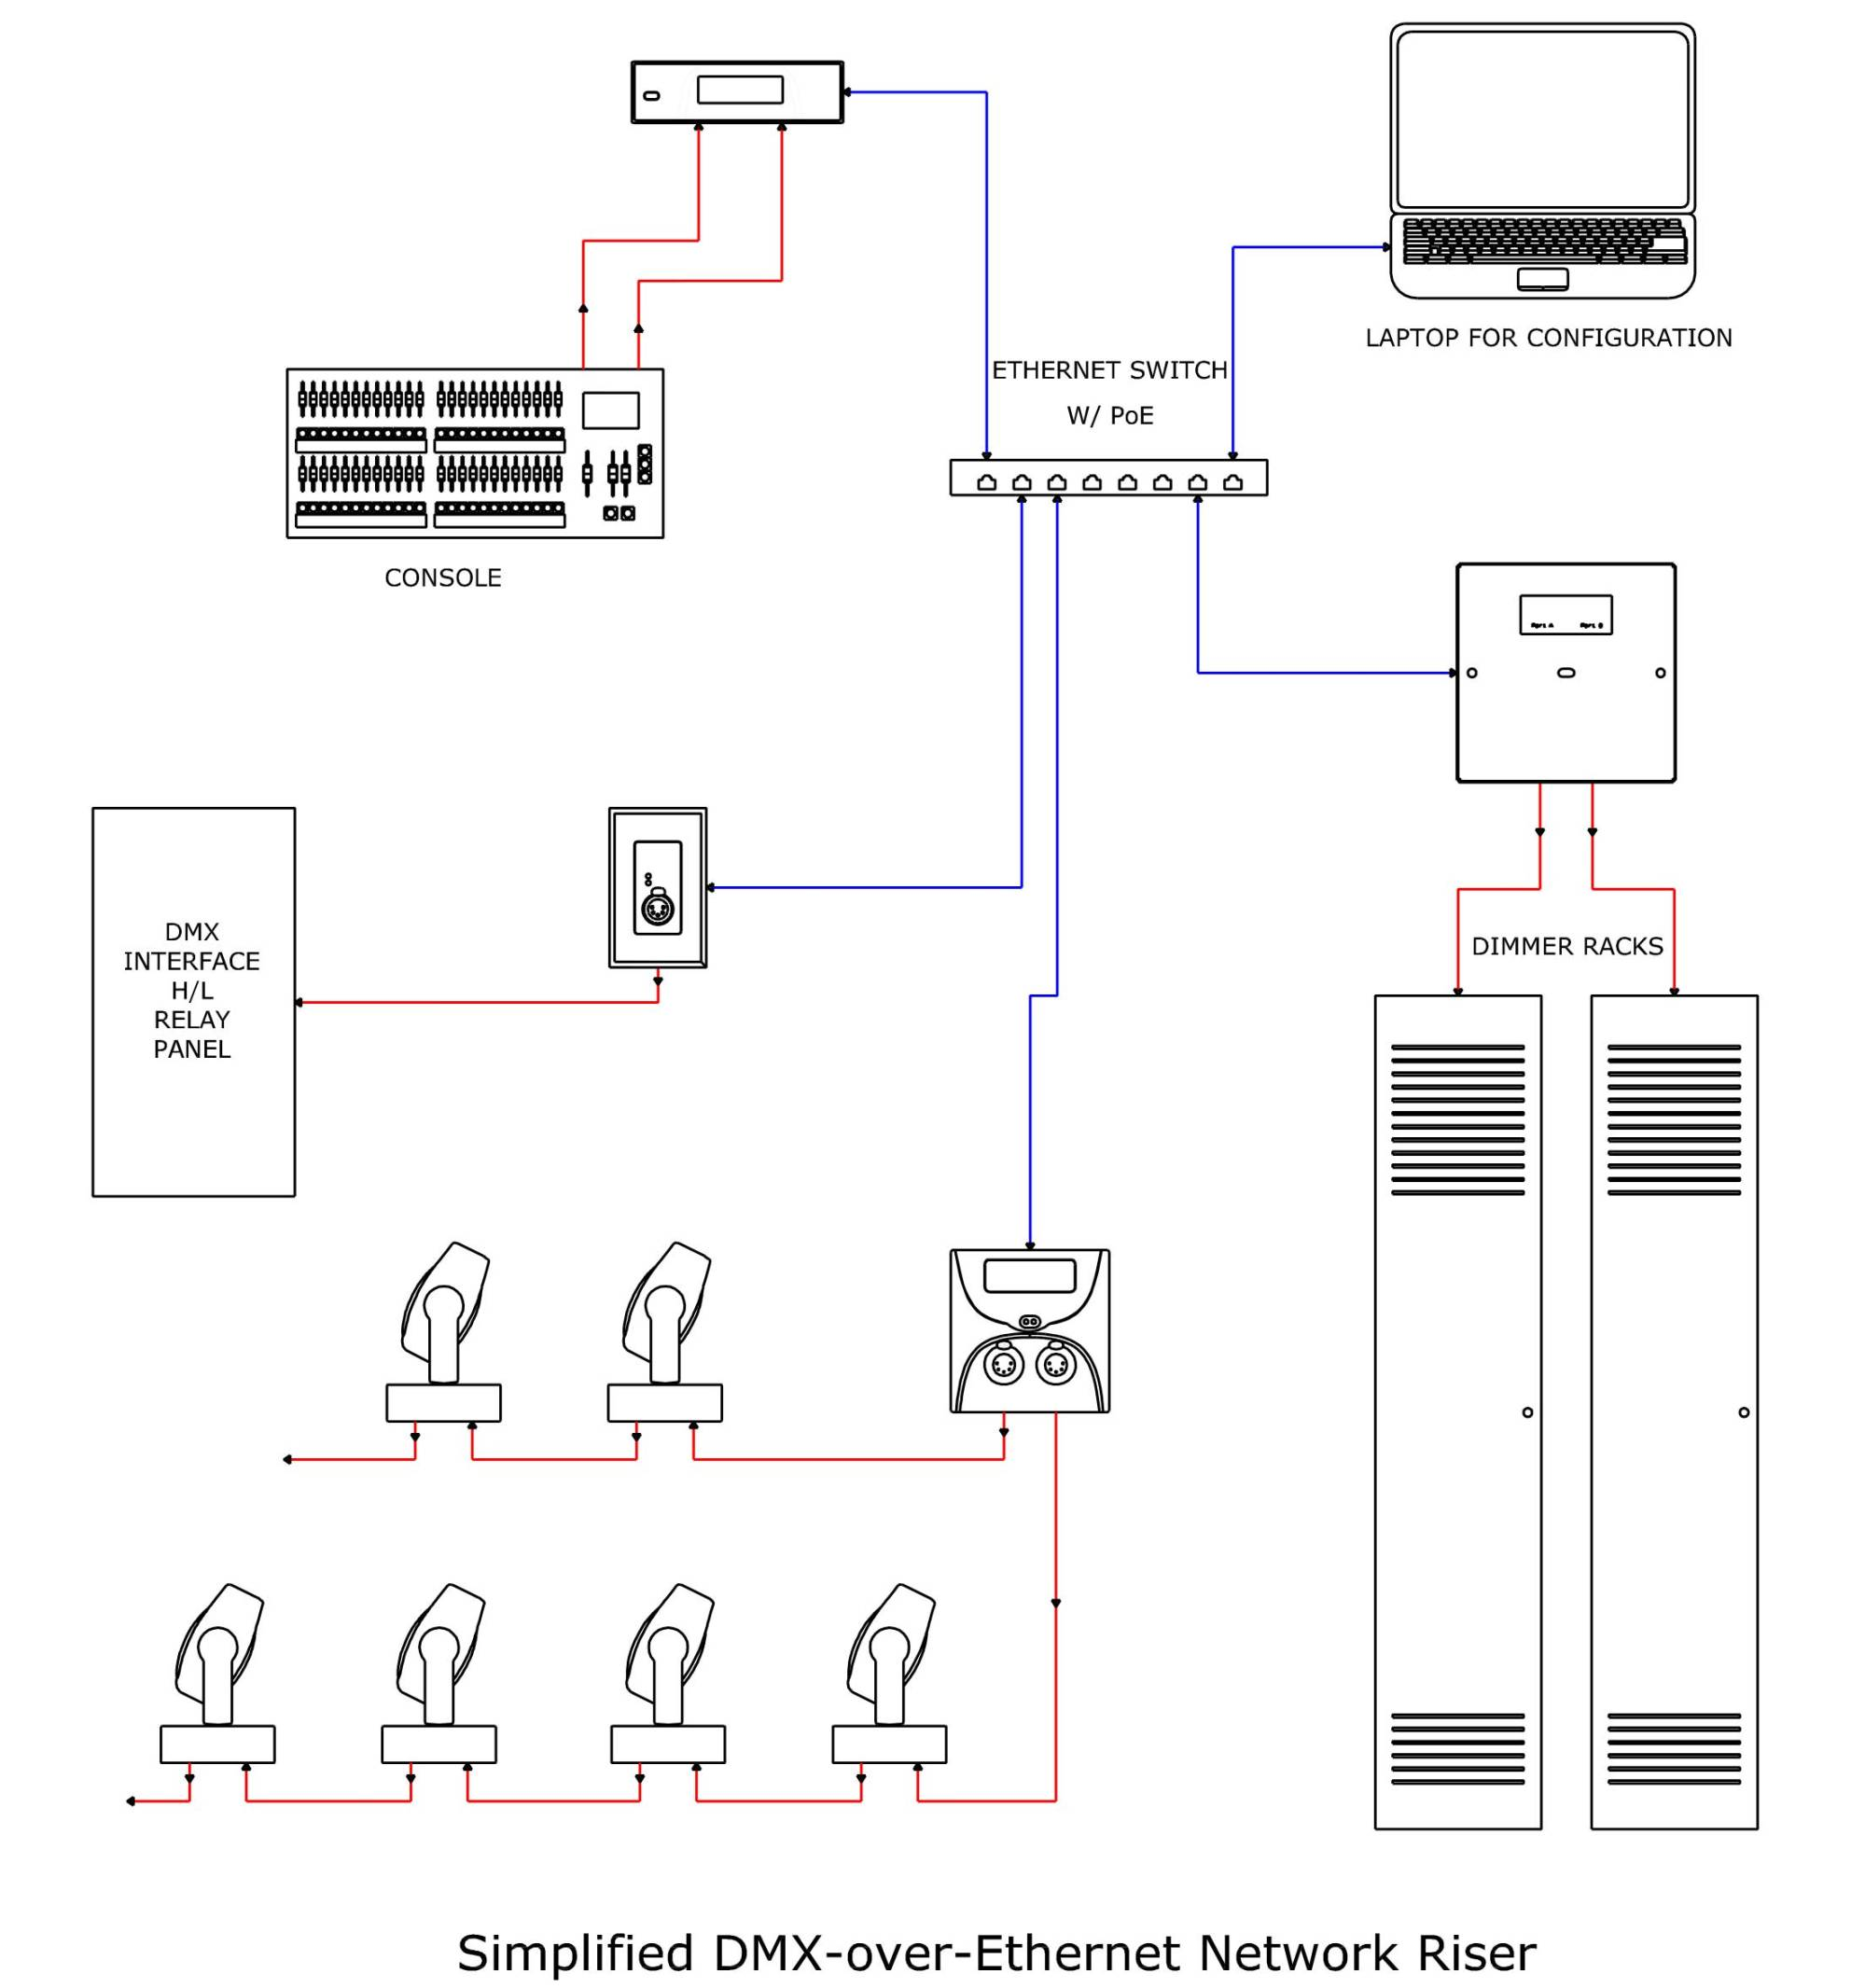 hight resolution of dmx ethernet wiring diagram wiring diagrams scematic xlr connector wiring diagram simple dmx wiring diagram